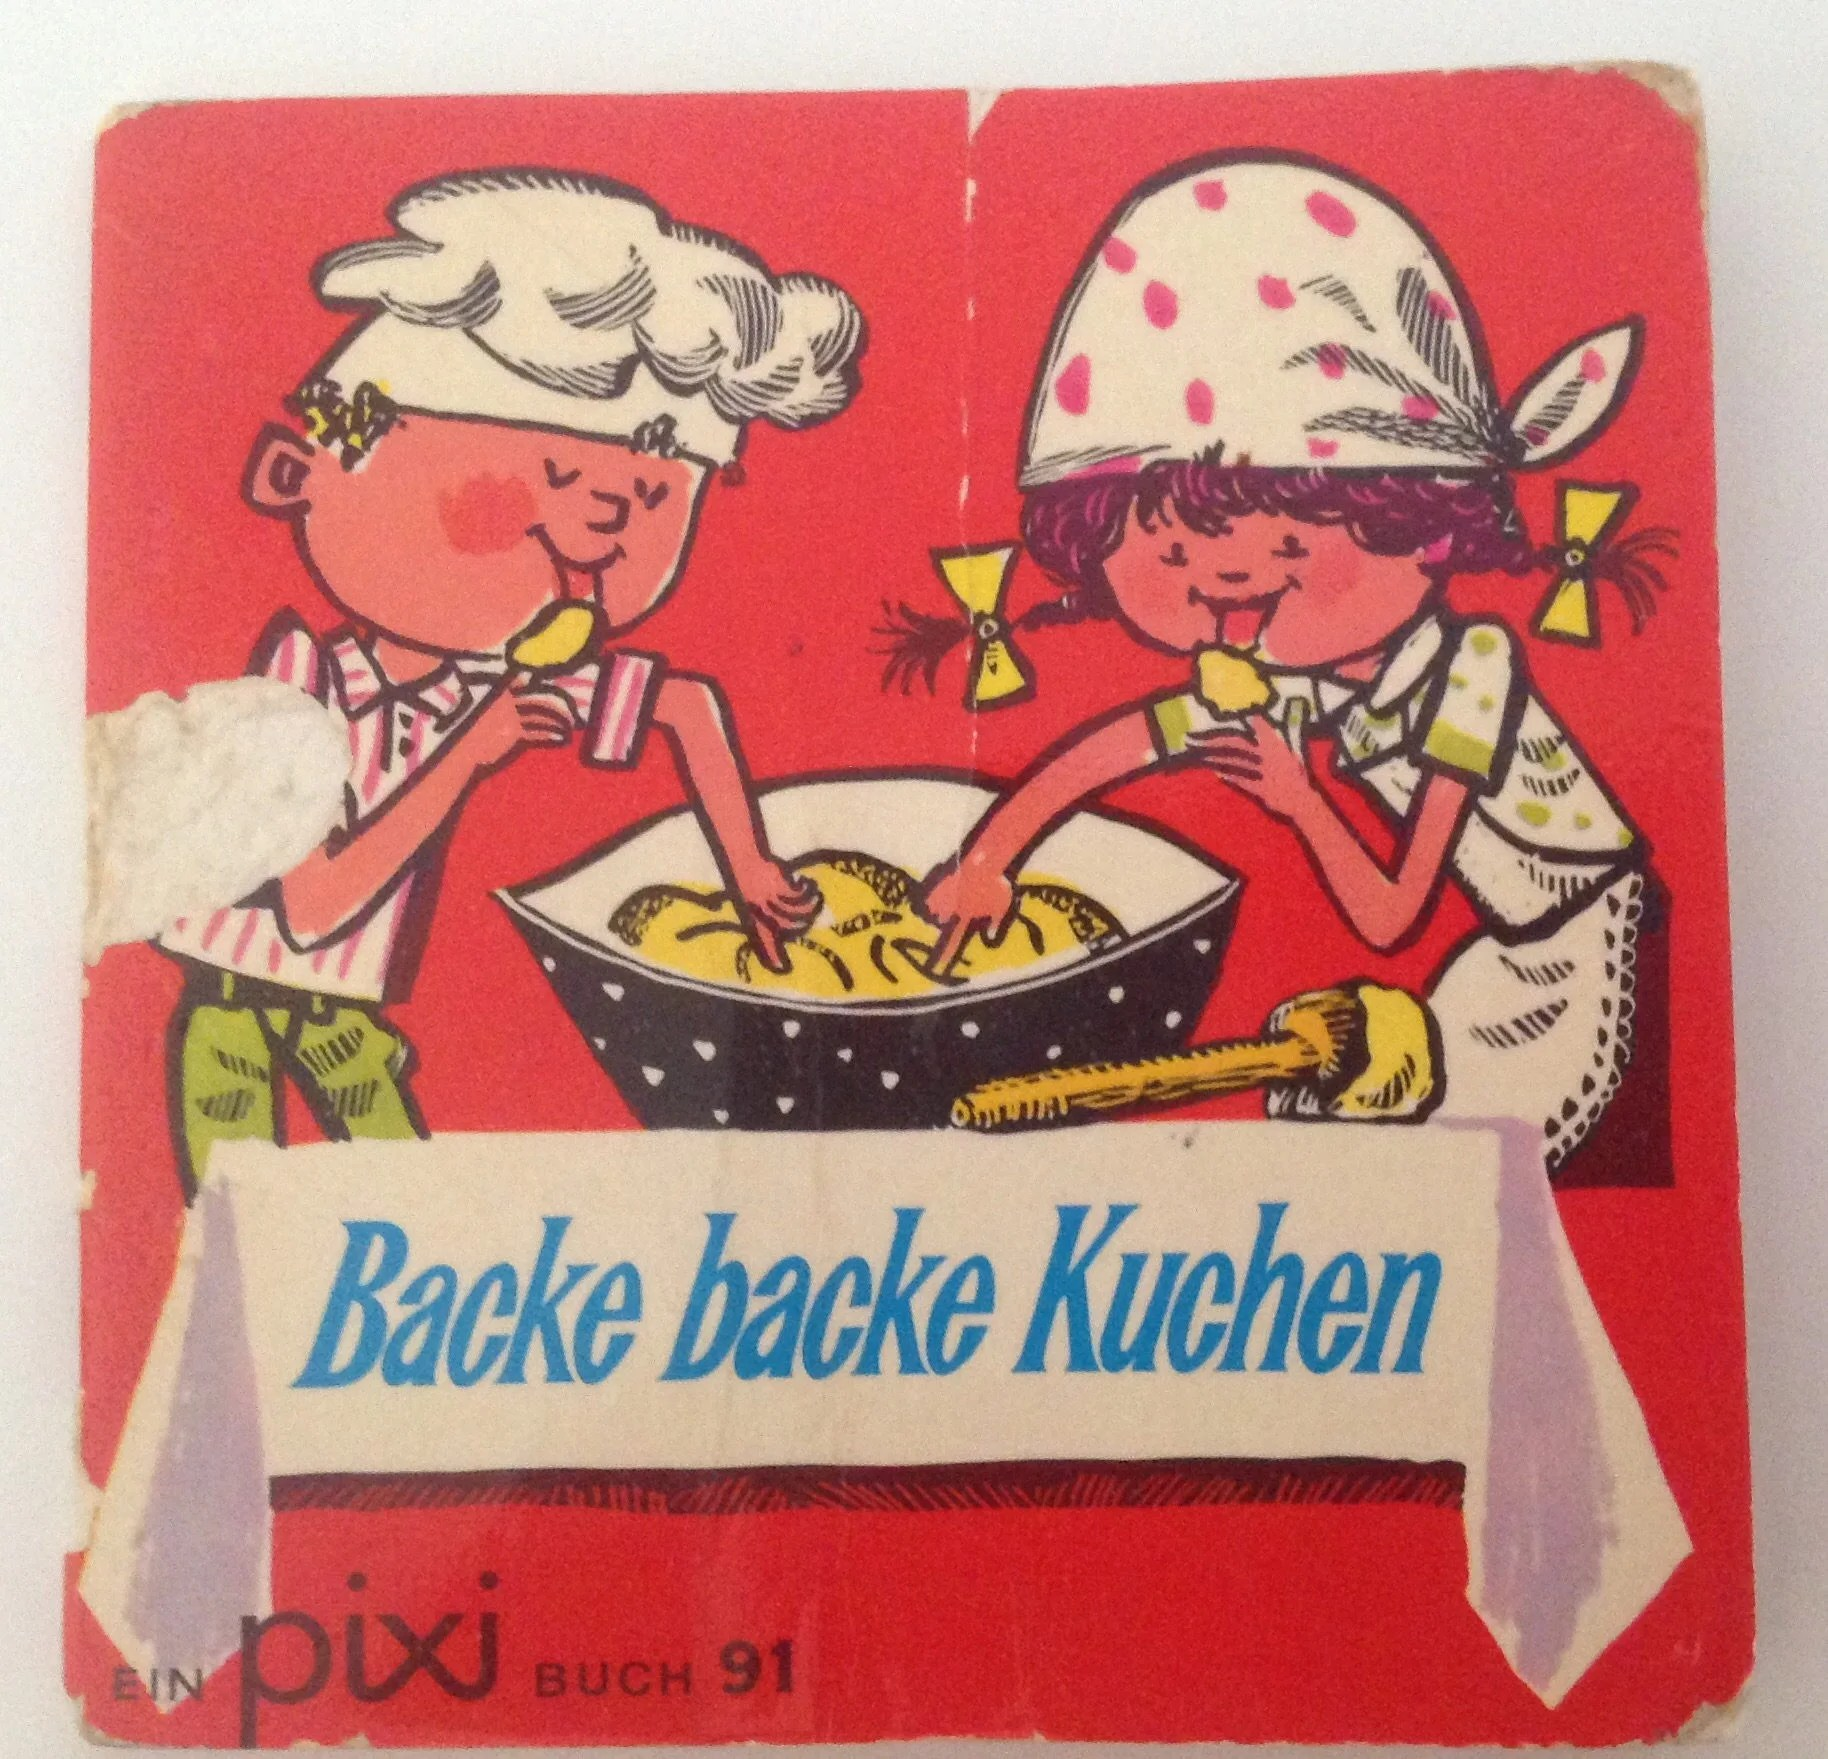 Backe Backe Kuchen German Pixi Book Backe Backe Kuchen Carlsen Verlag 3rd Edition 1971